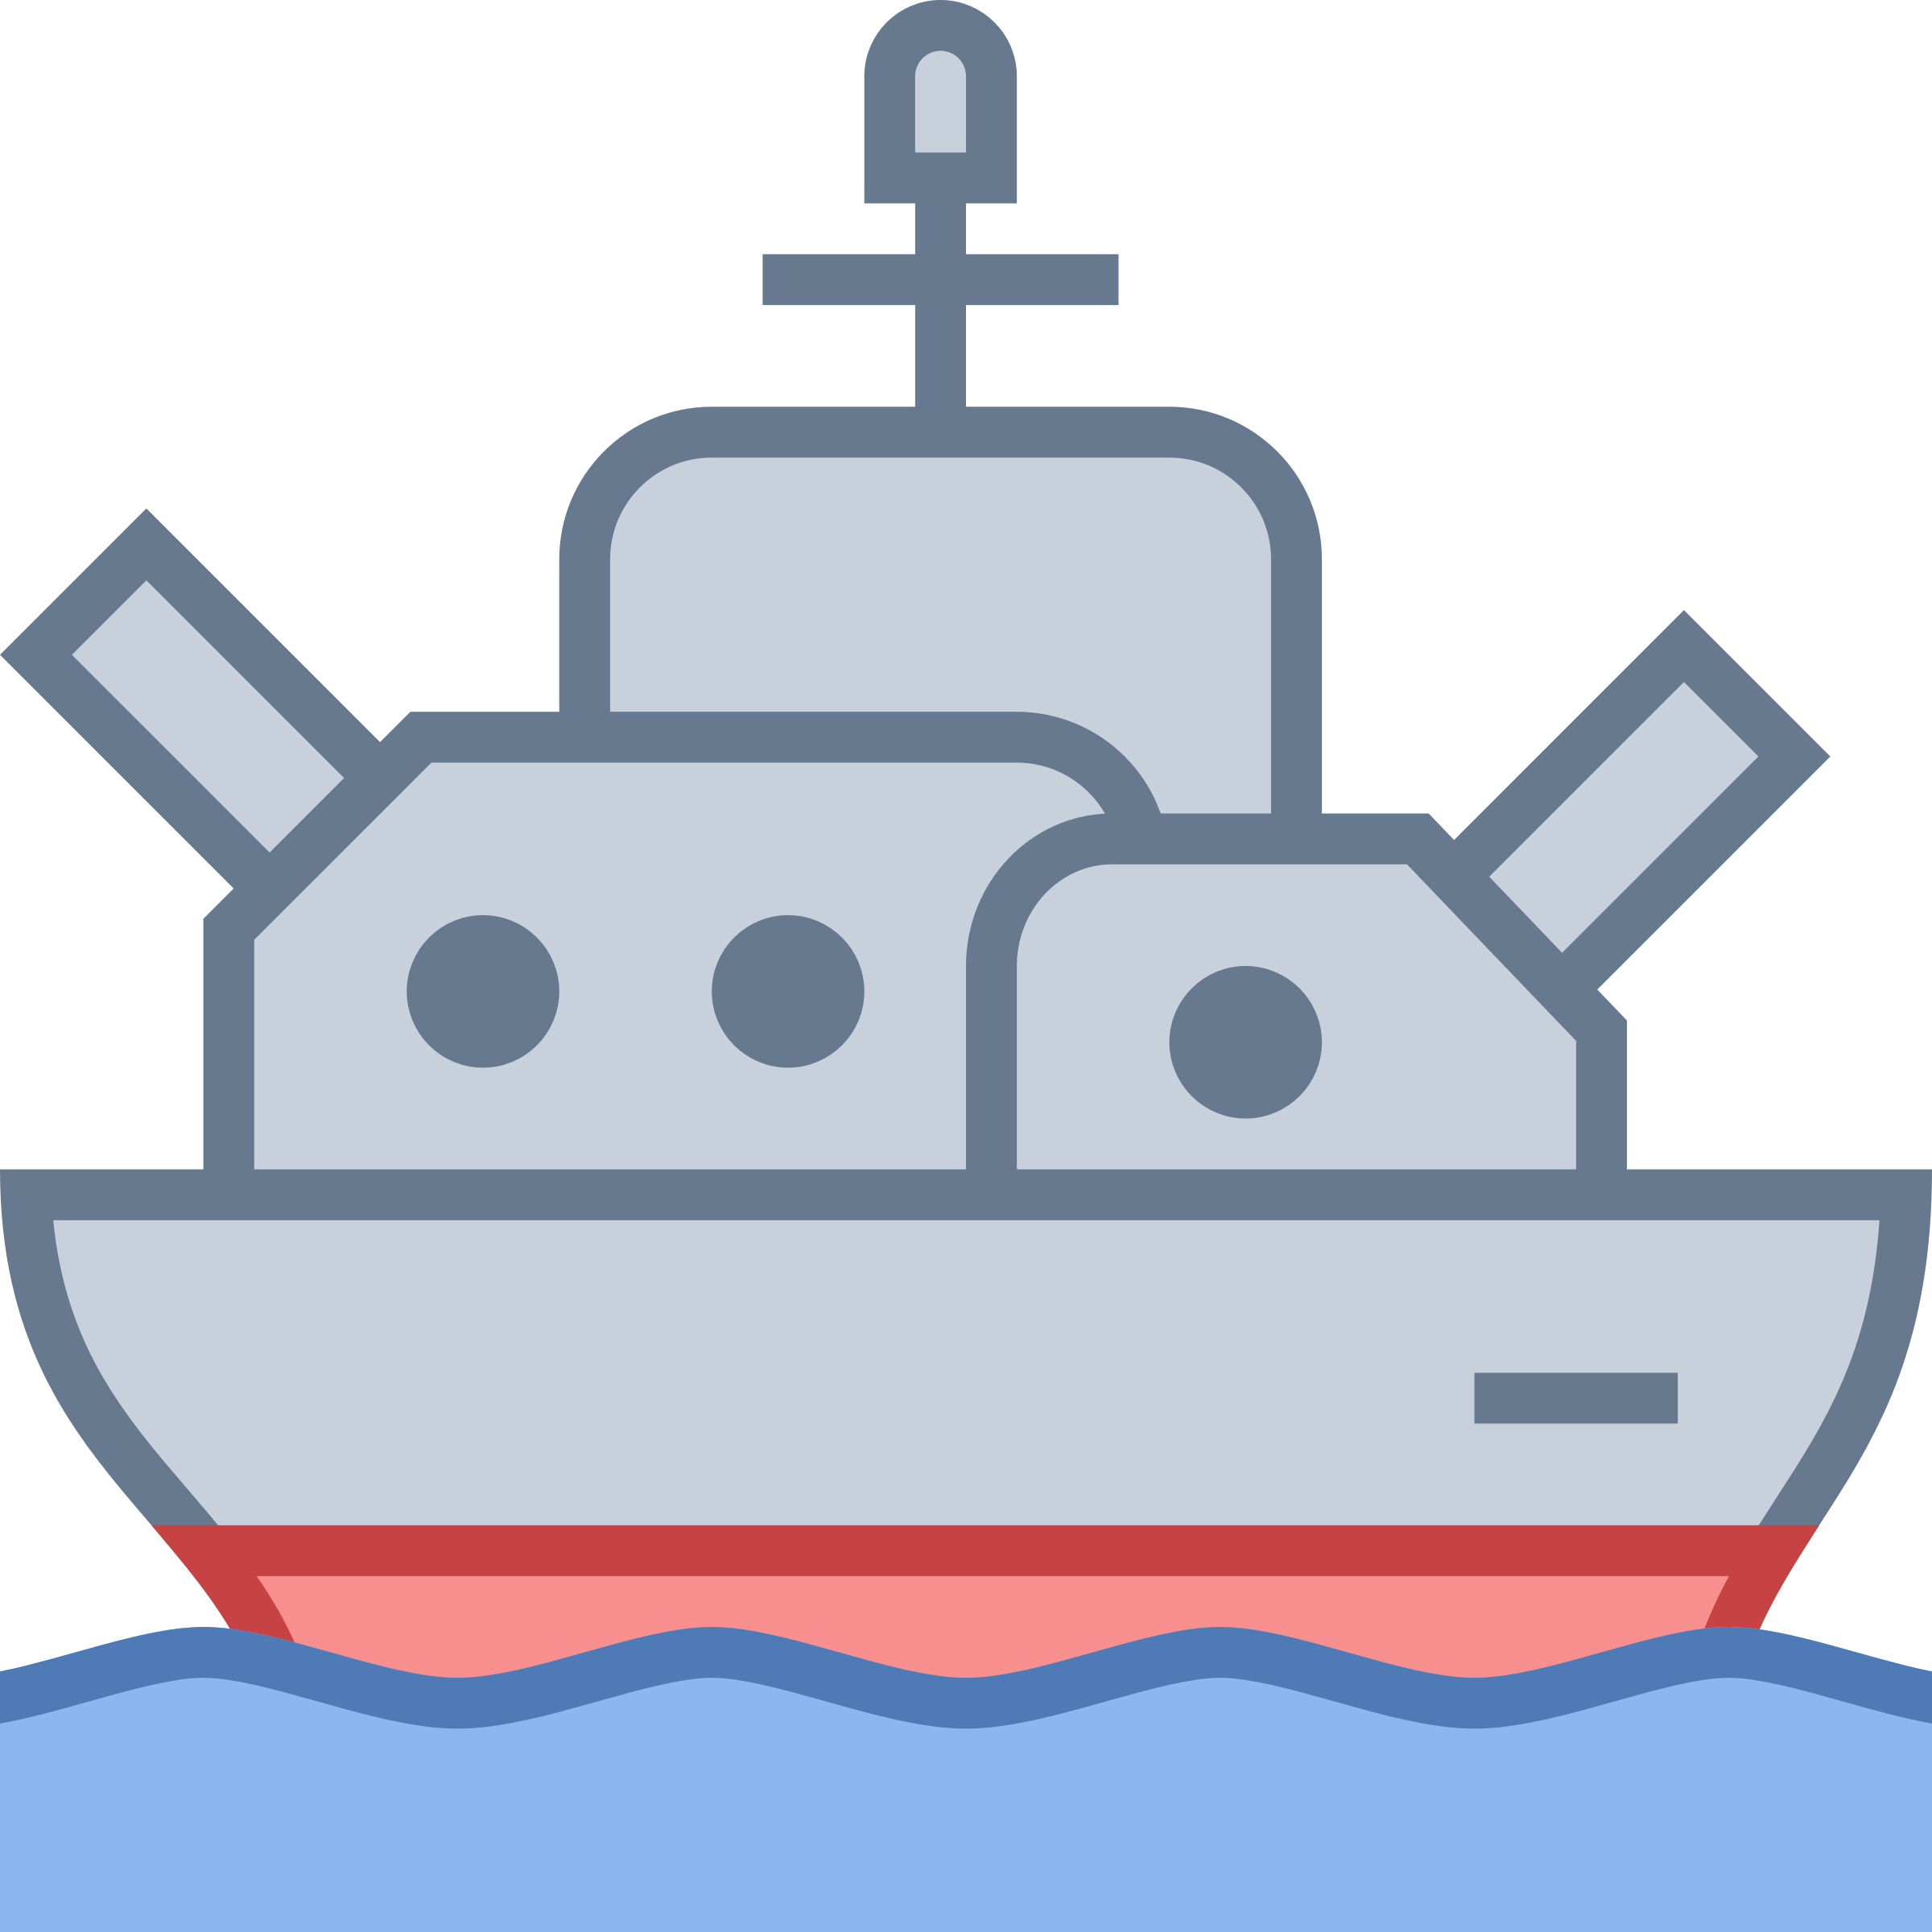 2400x2400 Navy Ships Clipart Battleship Game